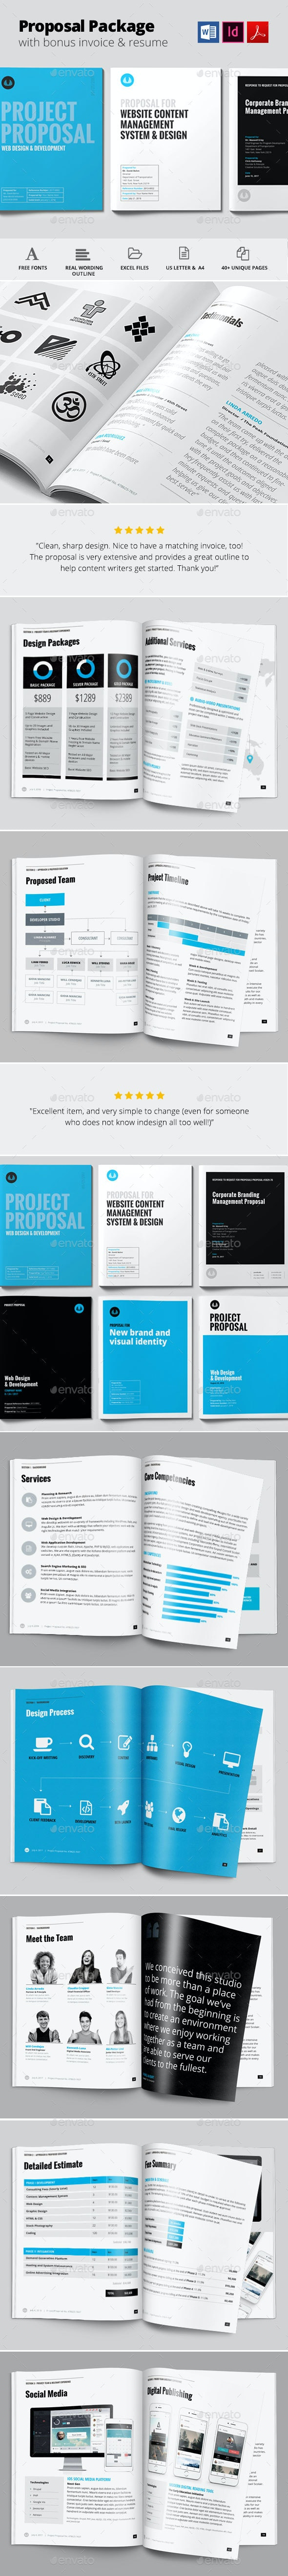 Project Proposal Template - Proposals & Invoices Stationery